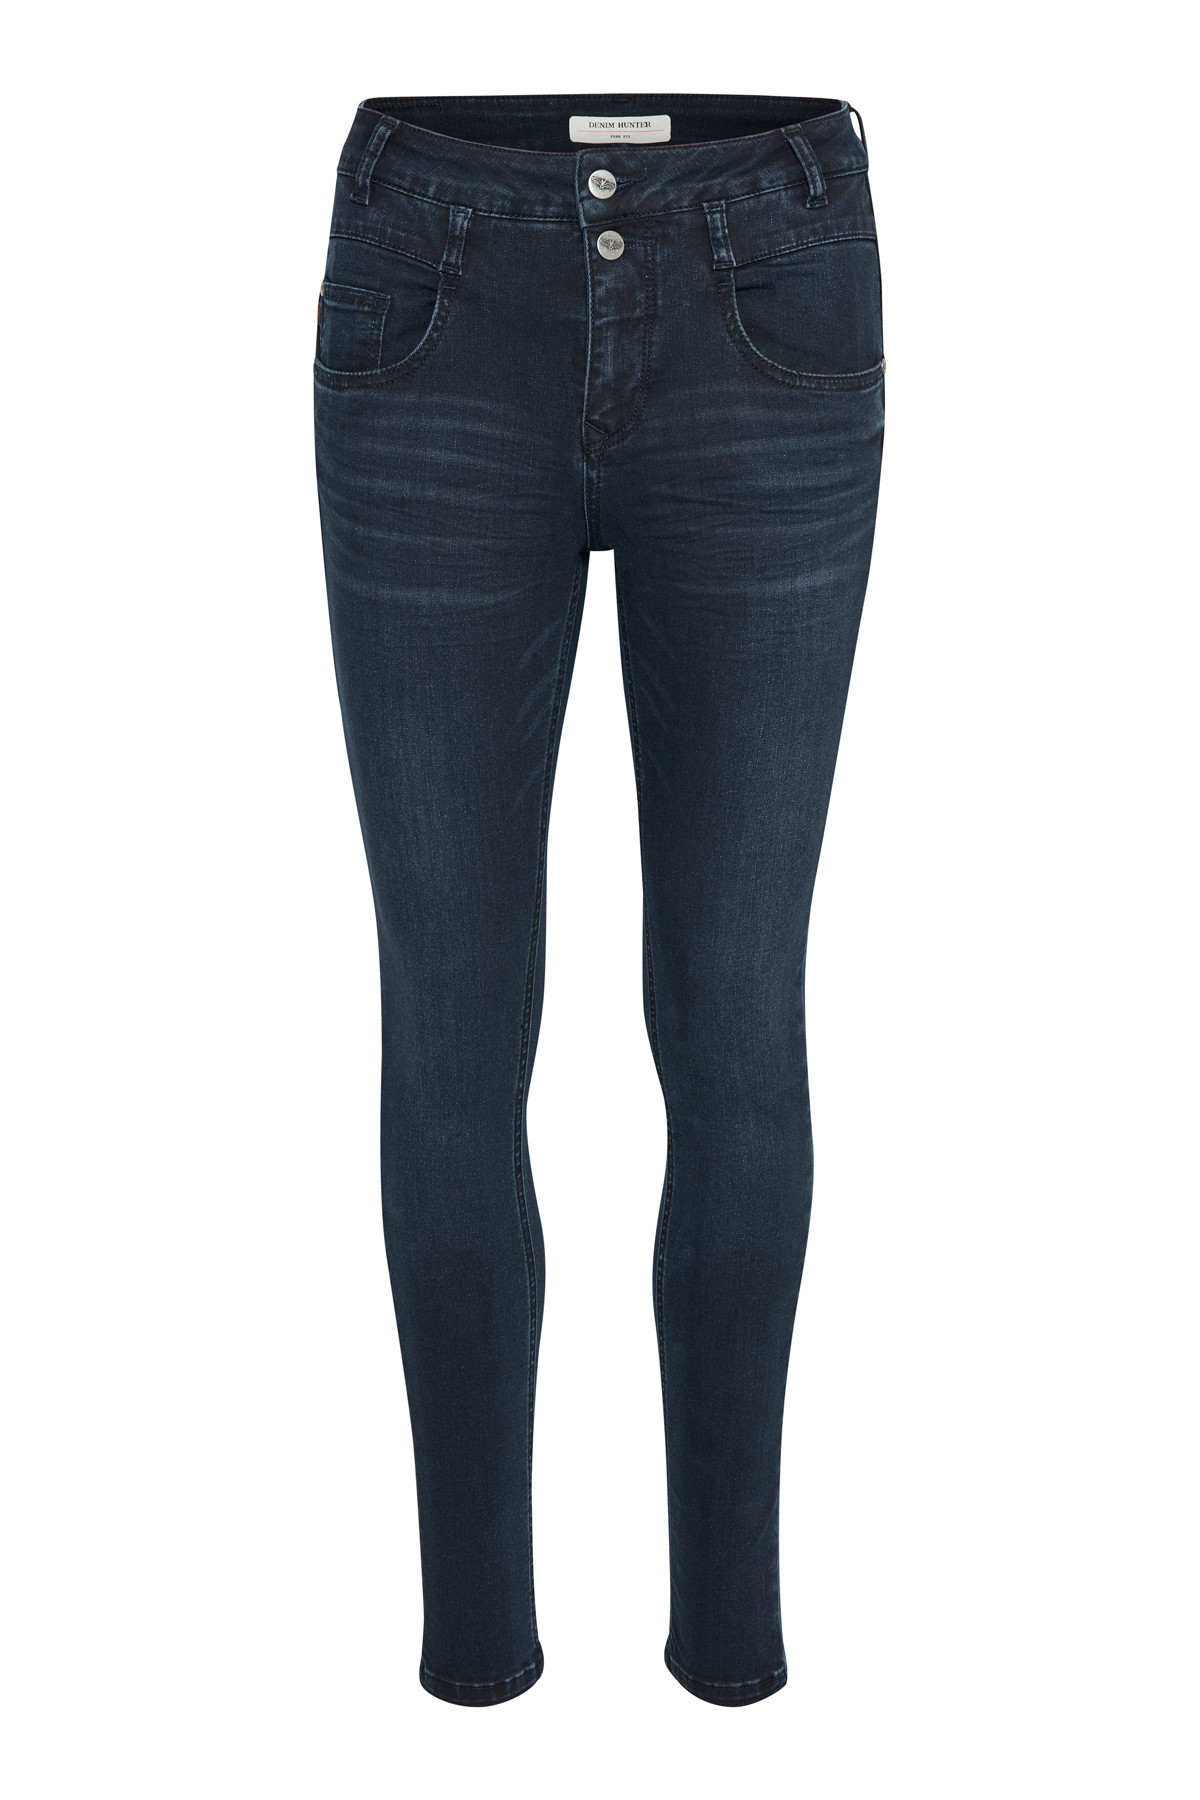 Image of   Denim Hunter FIOLA FREE JEANS 10701295 D (Dark Denim 38002, 34)